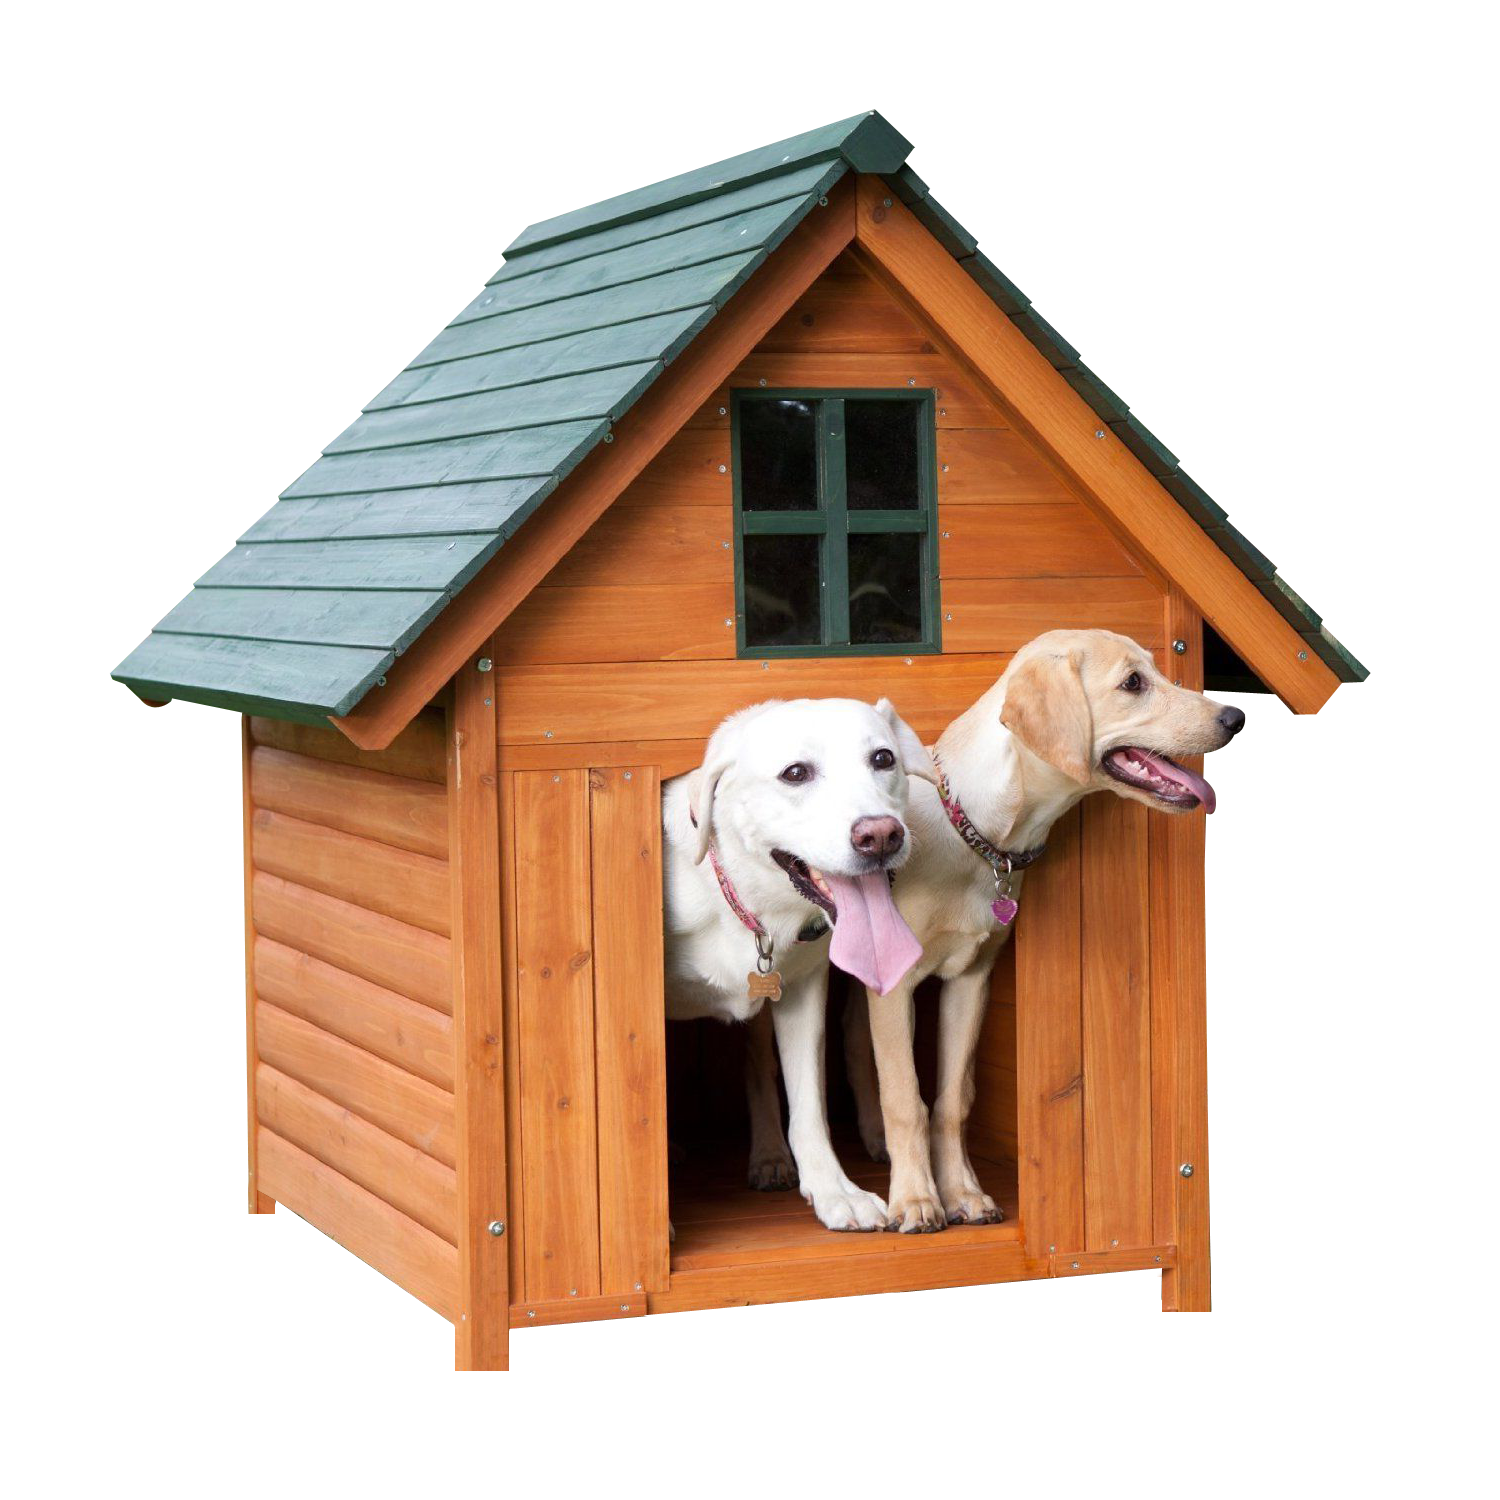 Dog in cage png. House image purepng free